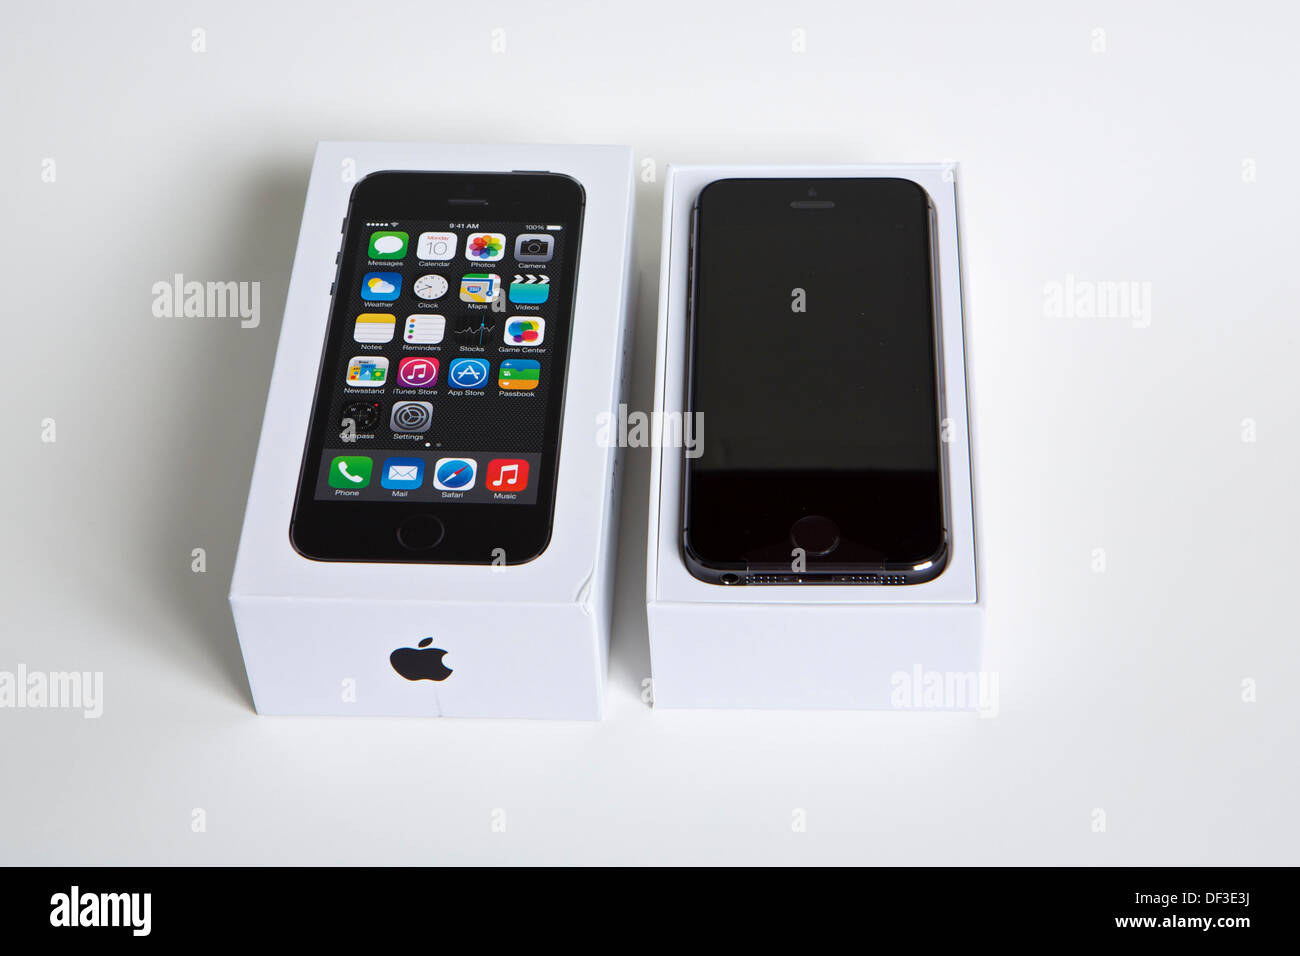 Apple iPhone 5S in packaging with box cover removed Stock Photo ... d574e009f4